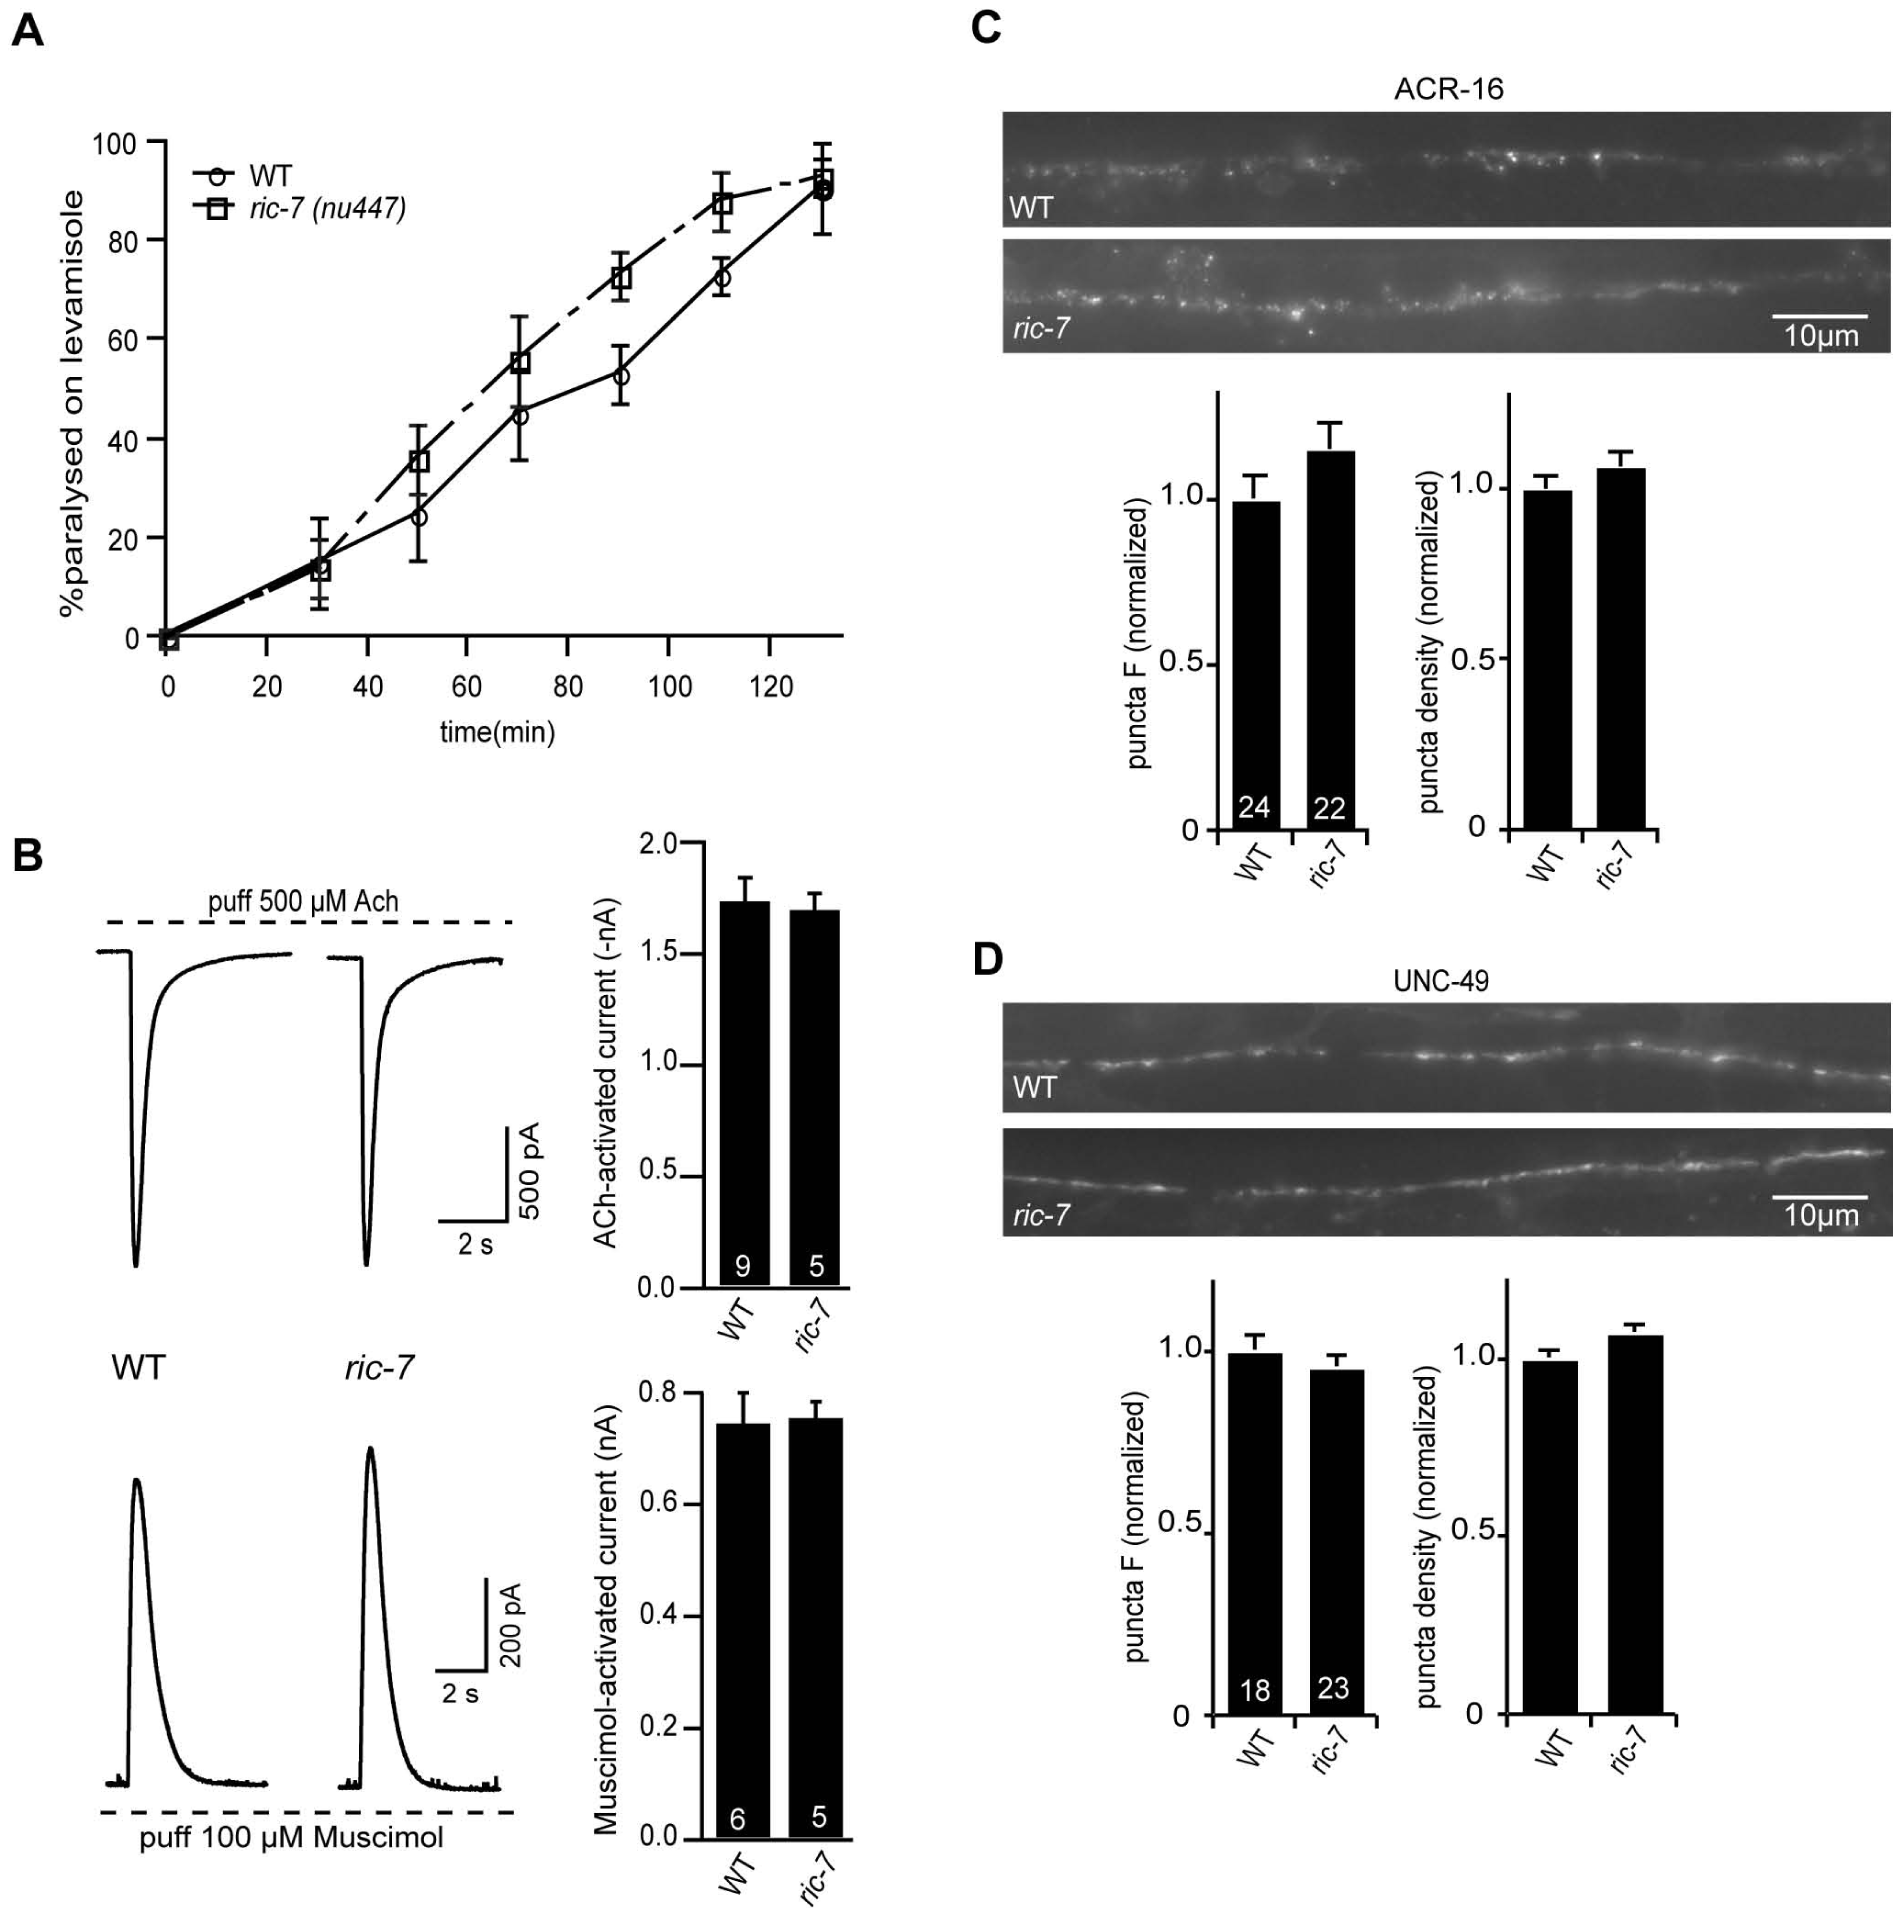 Body muscle responses to ACh and GABA are unaltered in <i>ric-7</i> mutants.